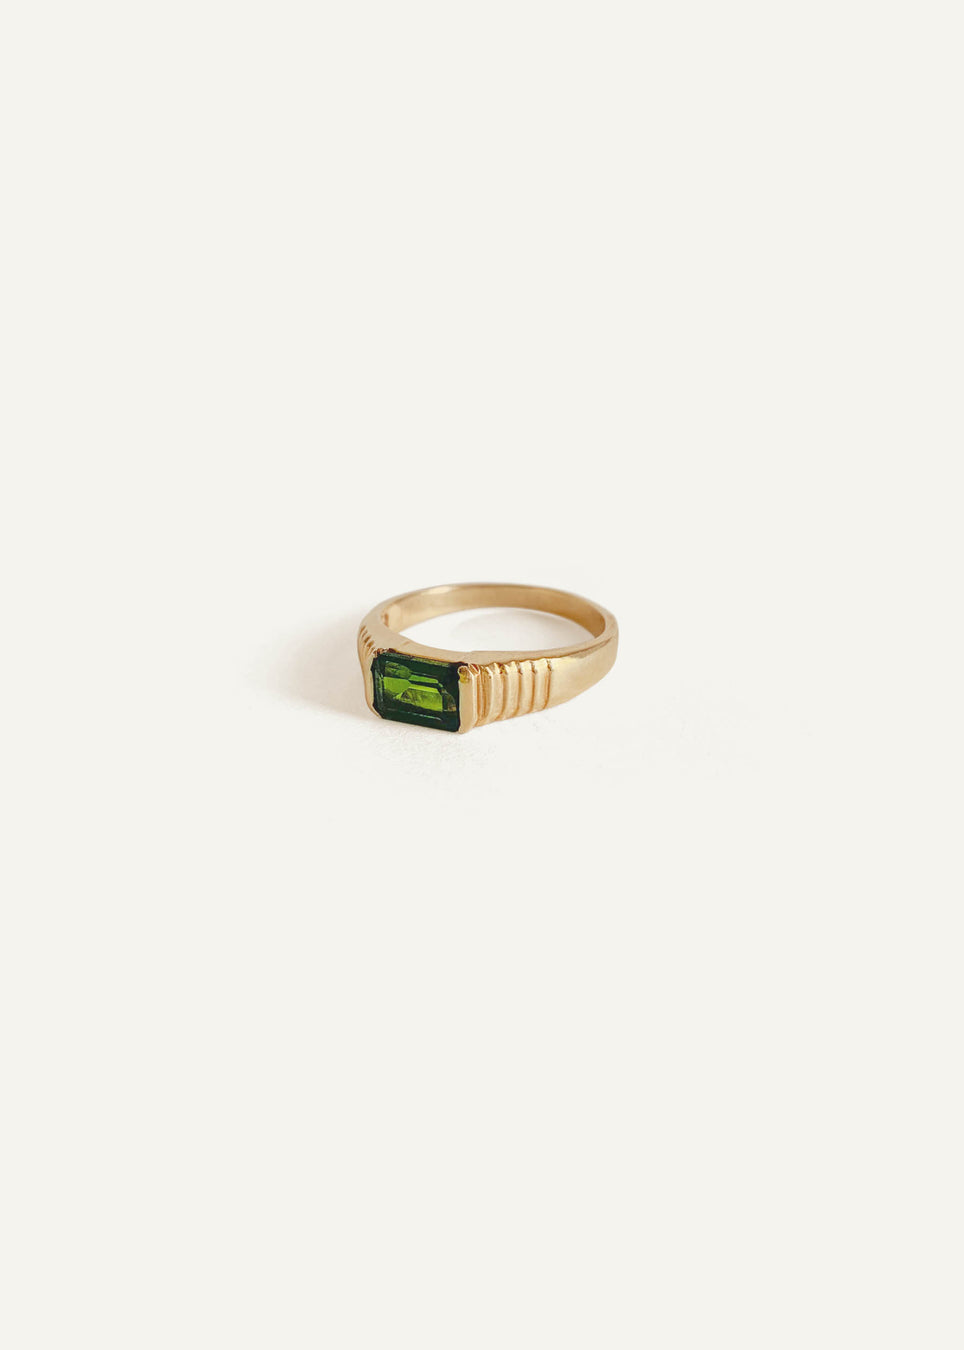 14k Emerald Cut Tourmaline Ring